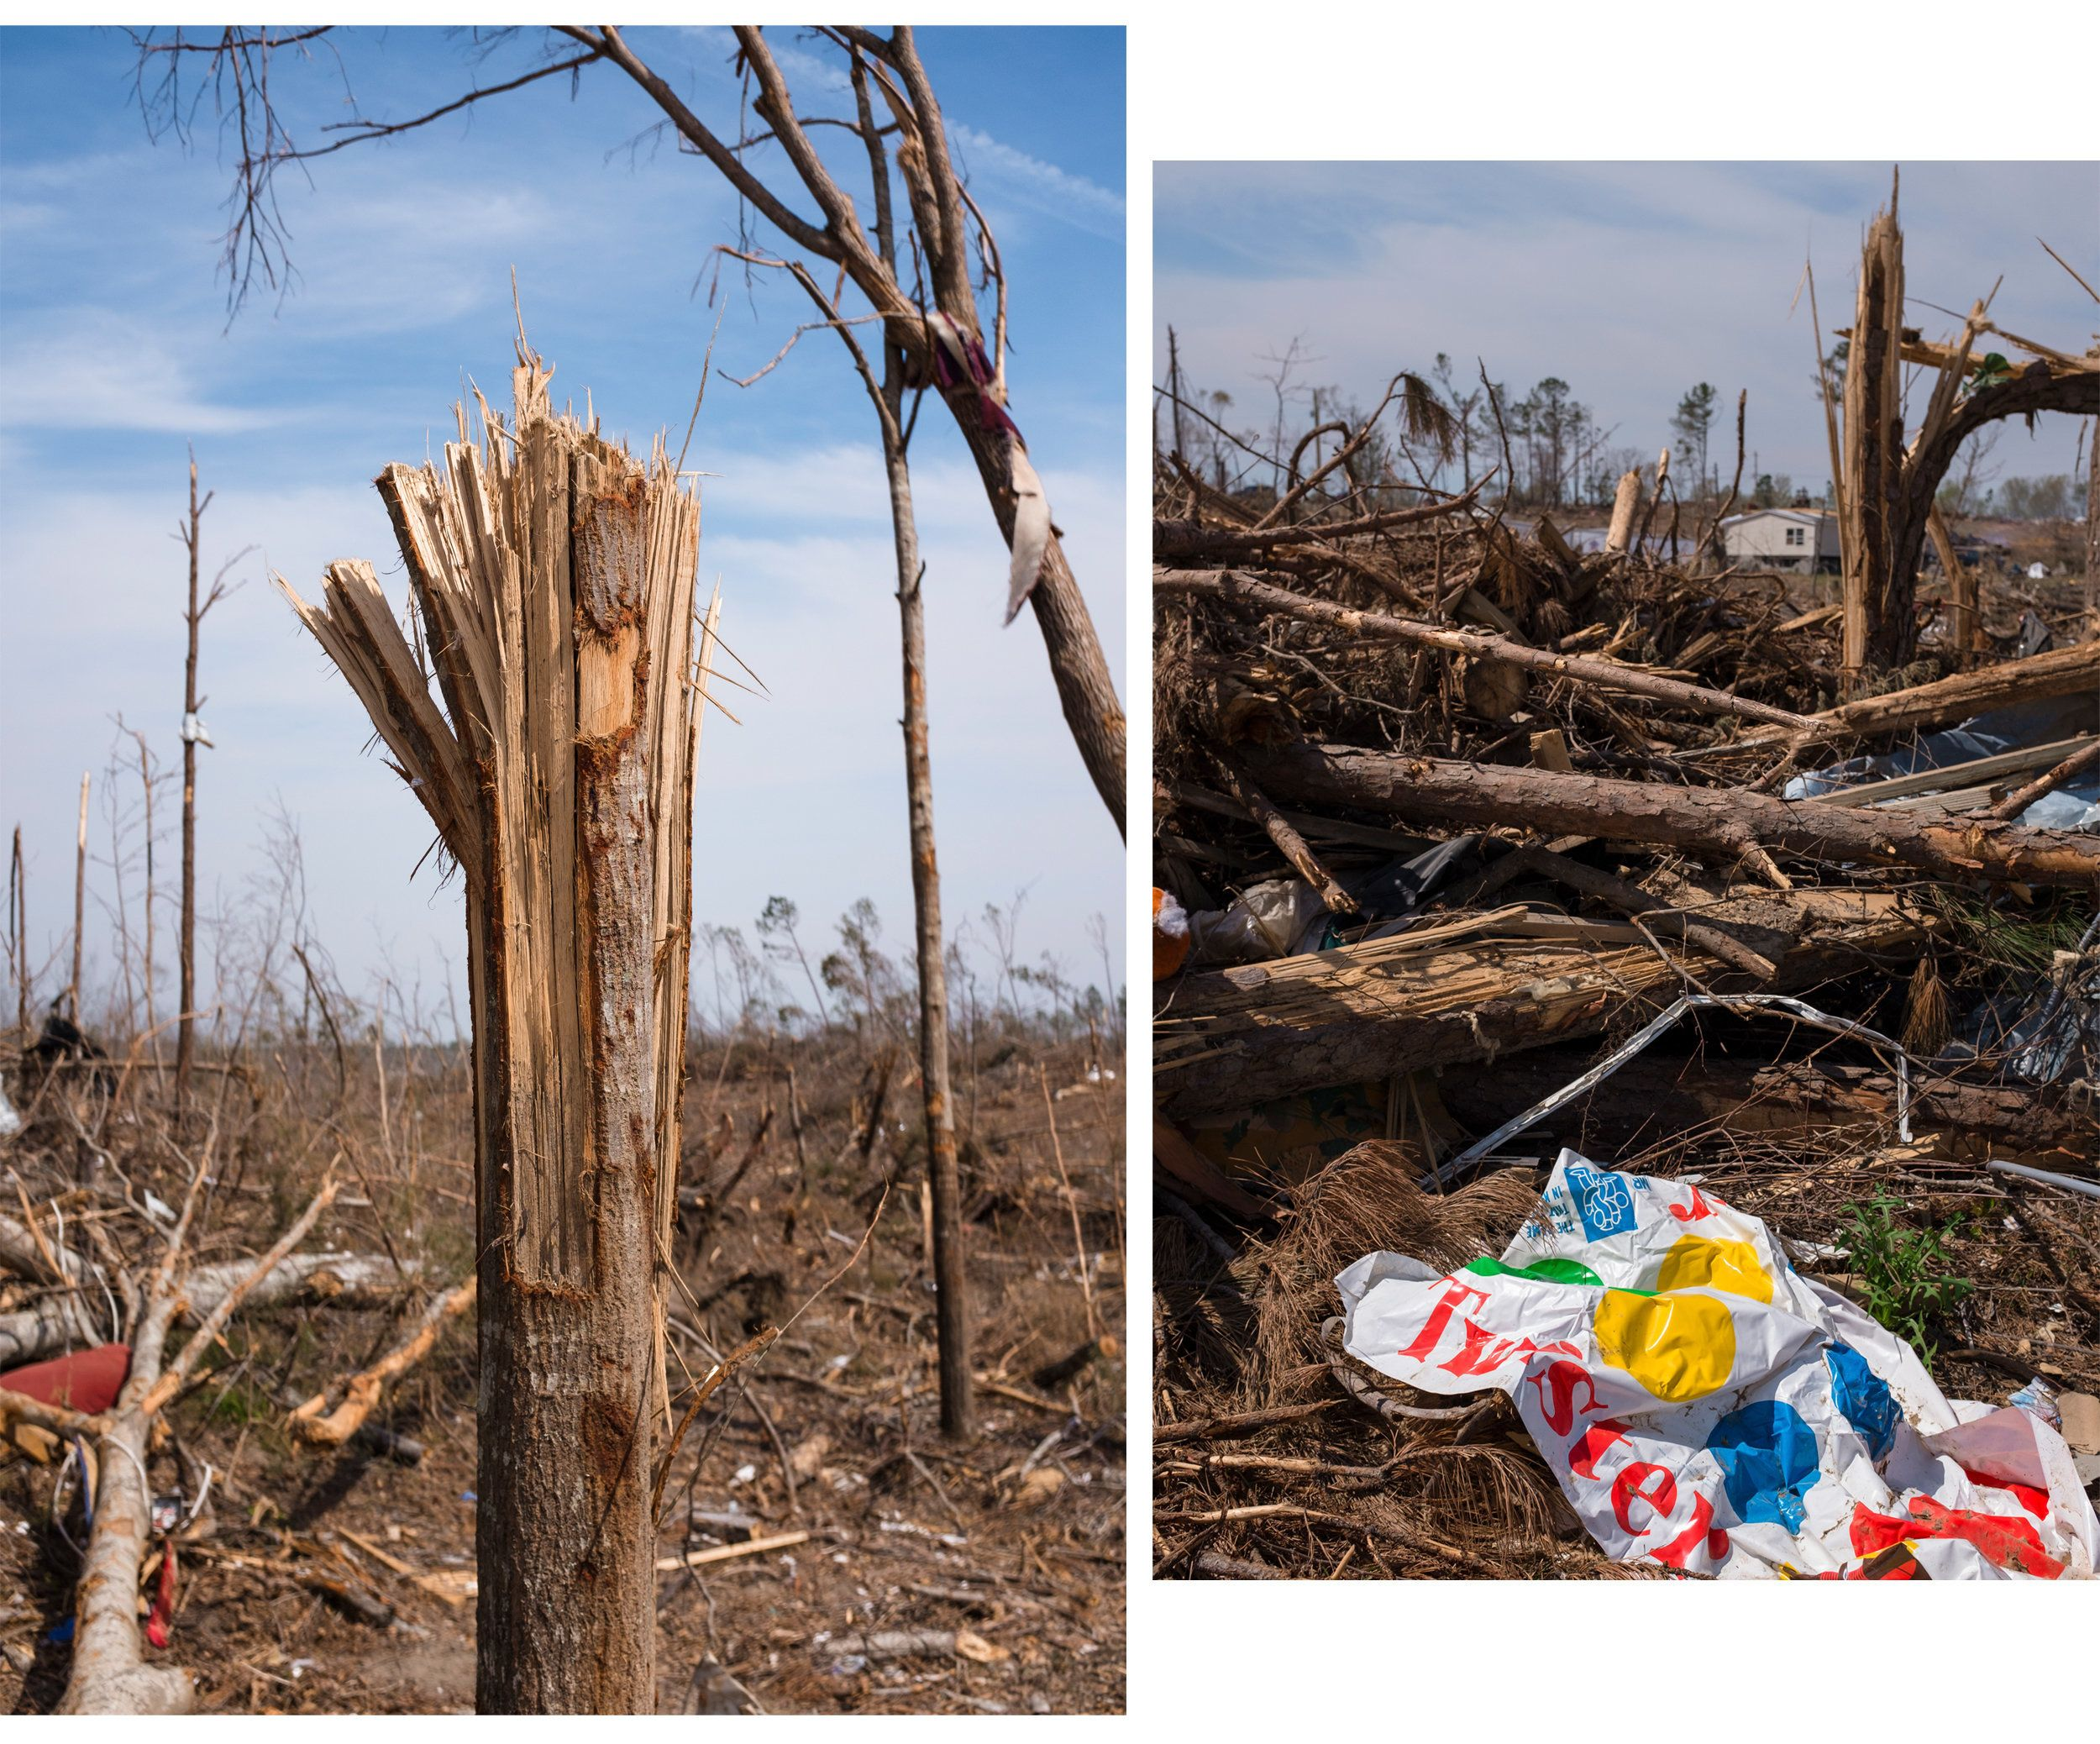 (Left) Trees were ripped apart as if they had been exploded by dynamite in Alabama's Lee County. (Right) A bit of irony -- th